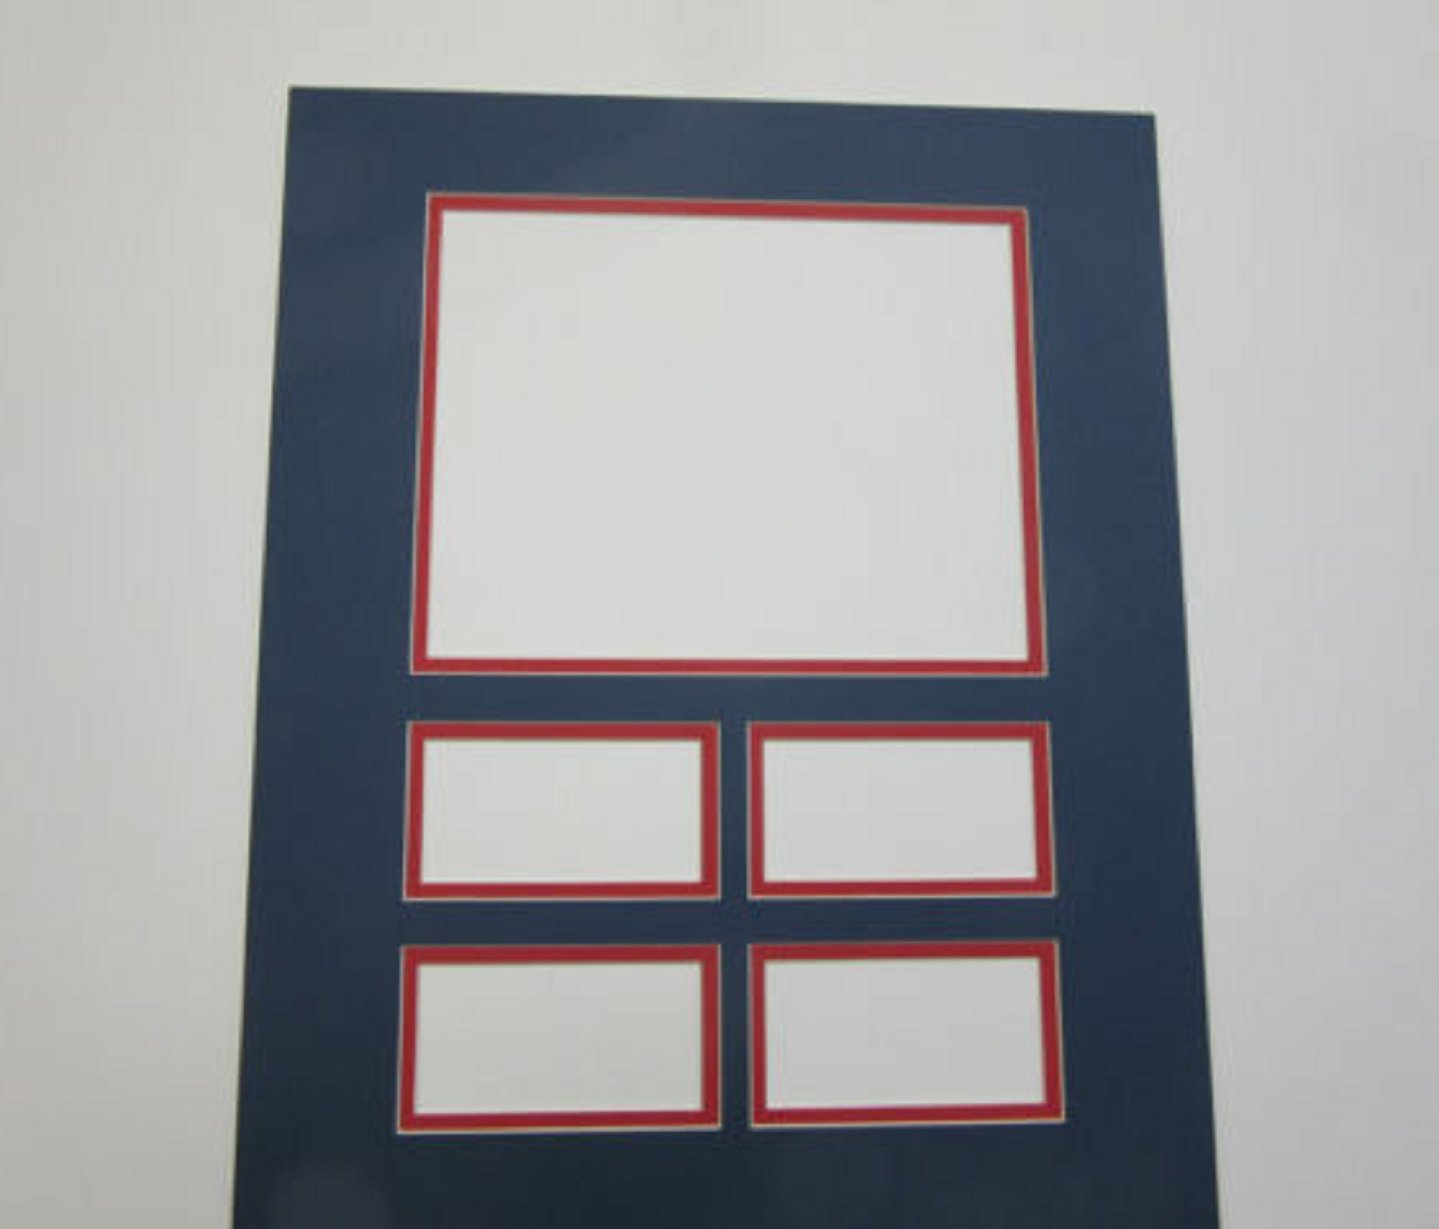 USA Premium Store Picture Framing Mats Navy and Red Cardinals colors set of 4